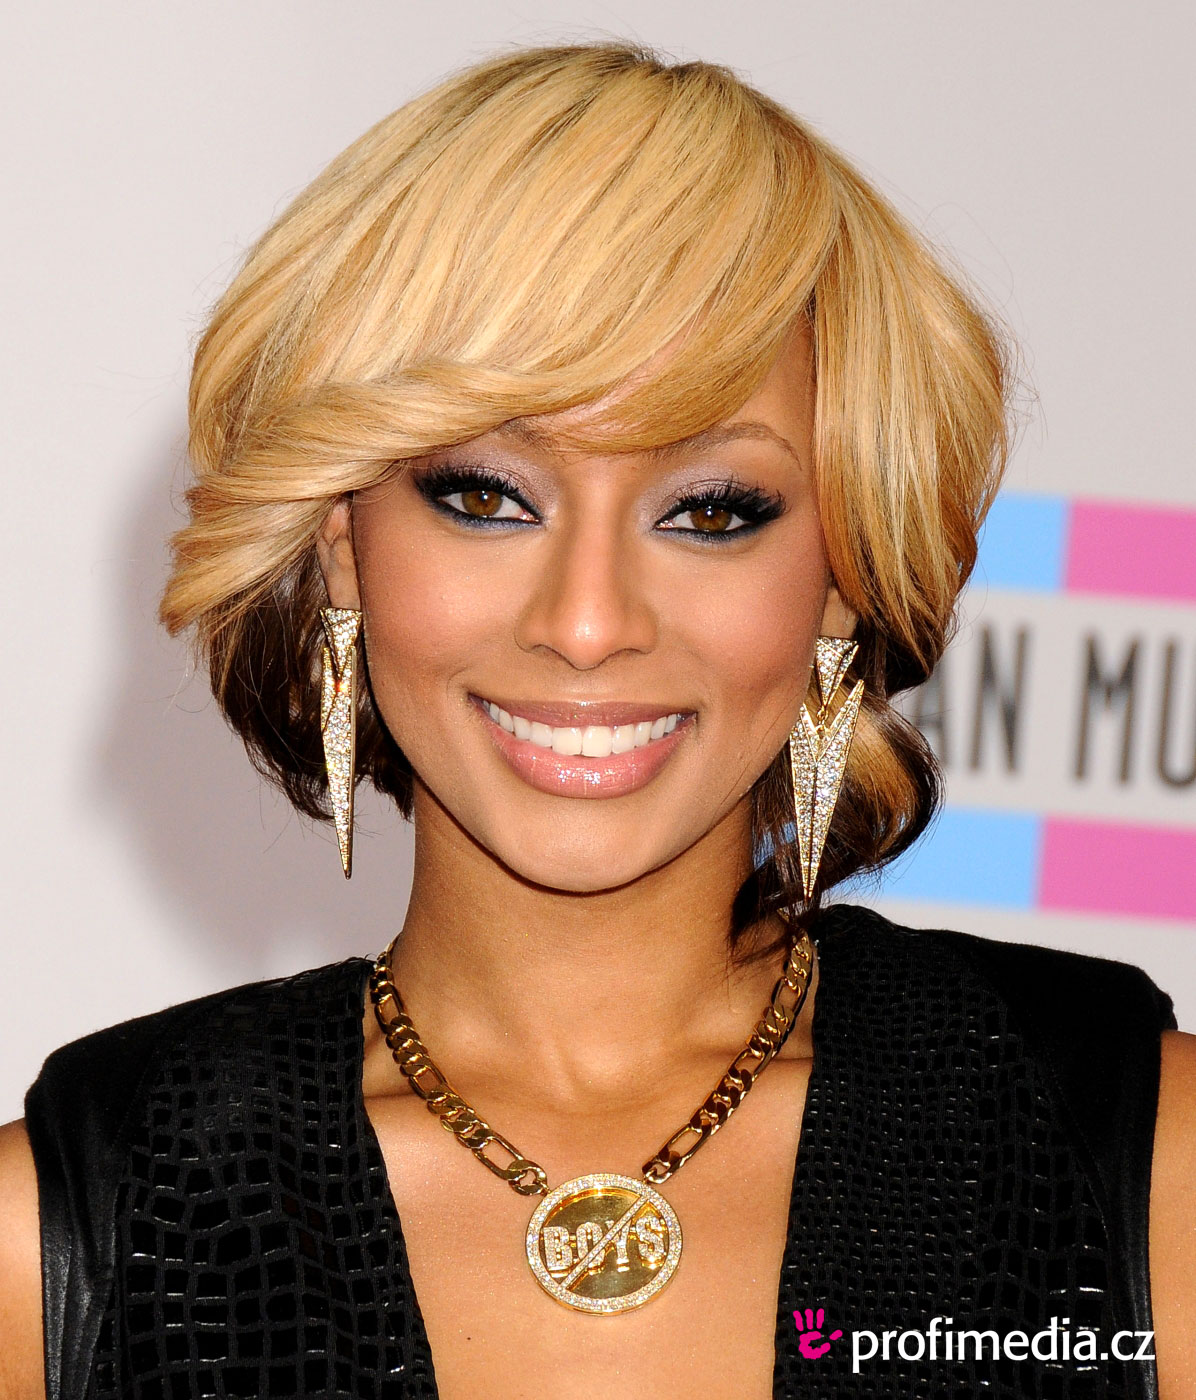 Awe Inspiring Keri Hilson Hairstyle Easyhairstyler Short Hairstyles For Black Women Fulllsitofus